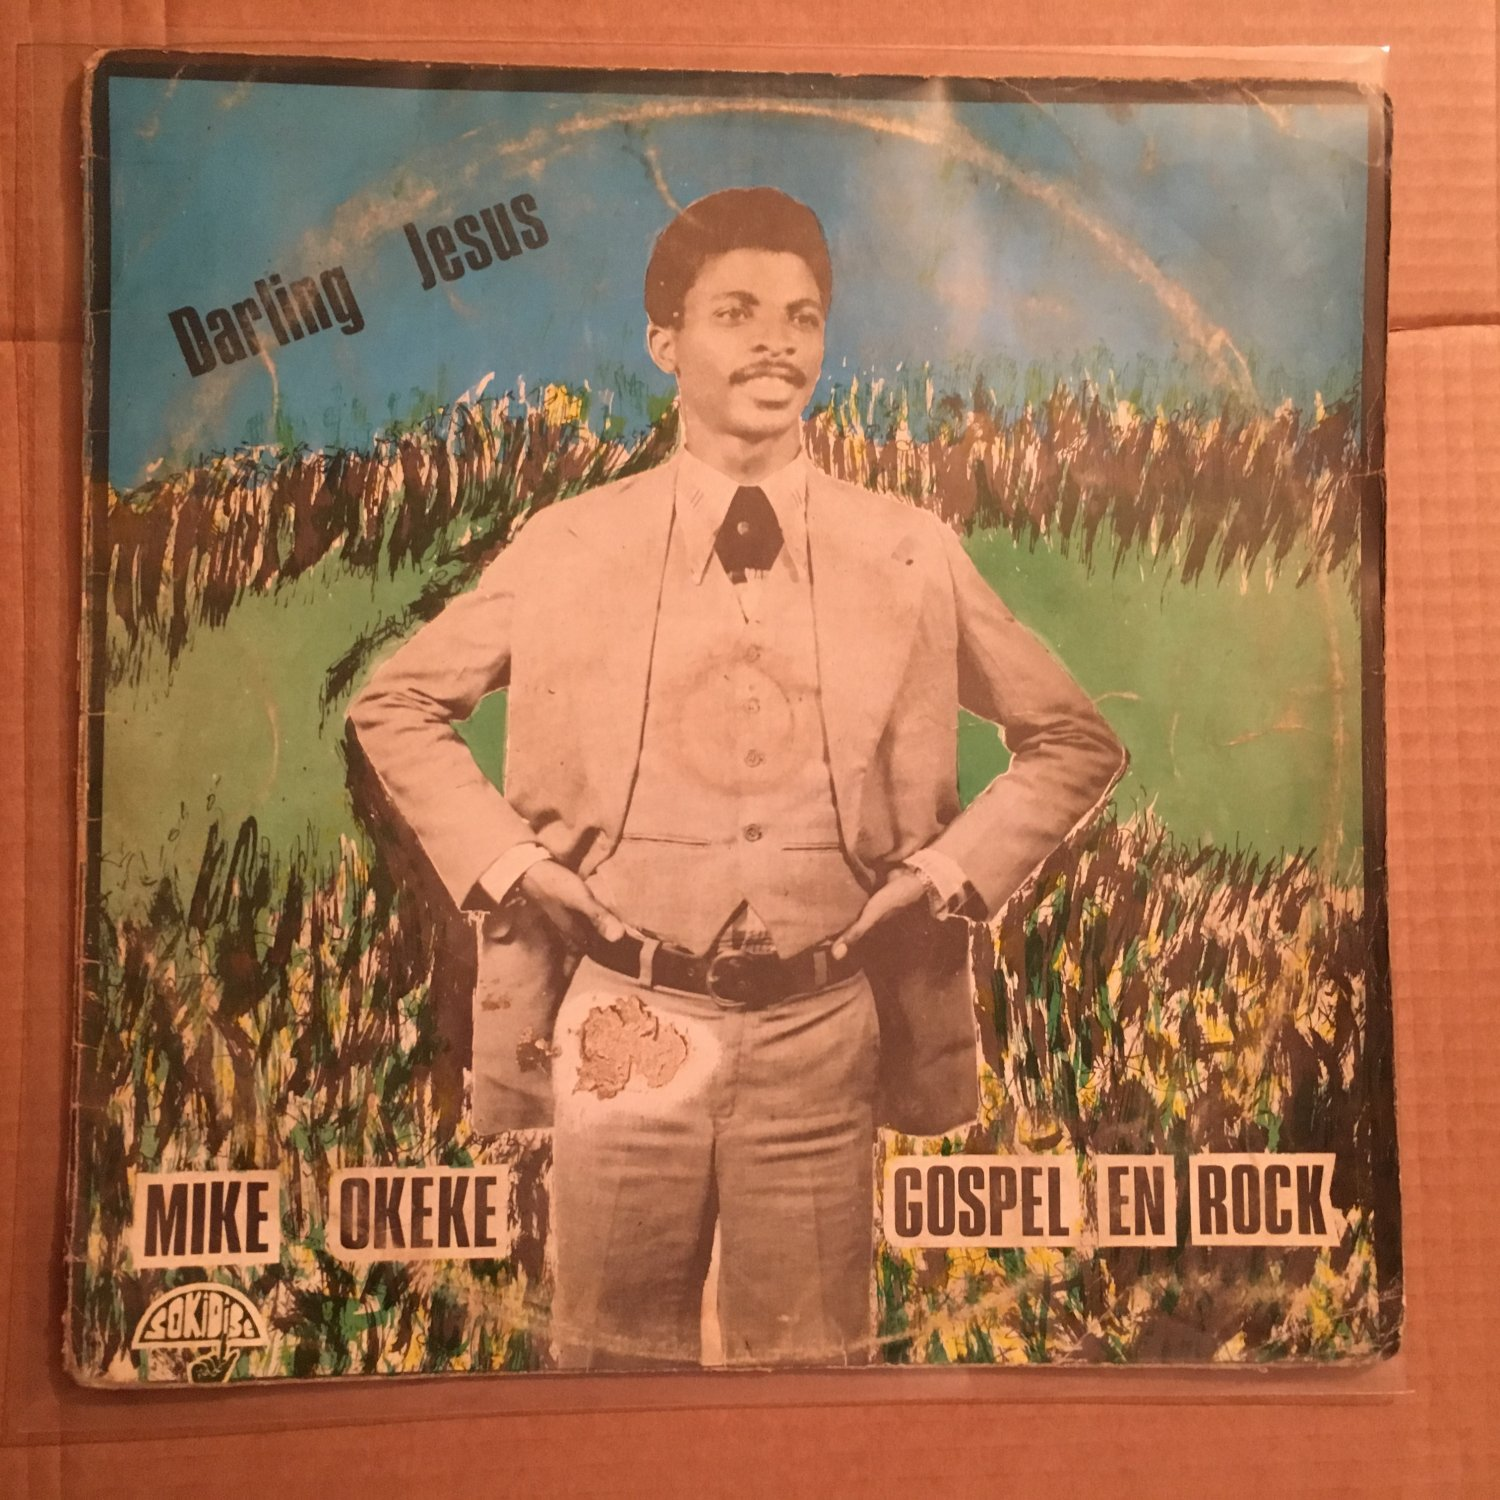 MIKE OKEKE LP darling Jesus NIGERIA GOSPEL ROCK REGGAE mp3 LISTEN